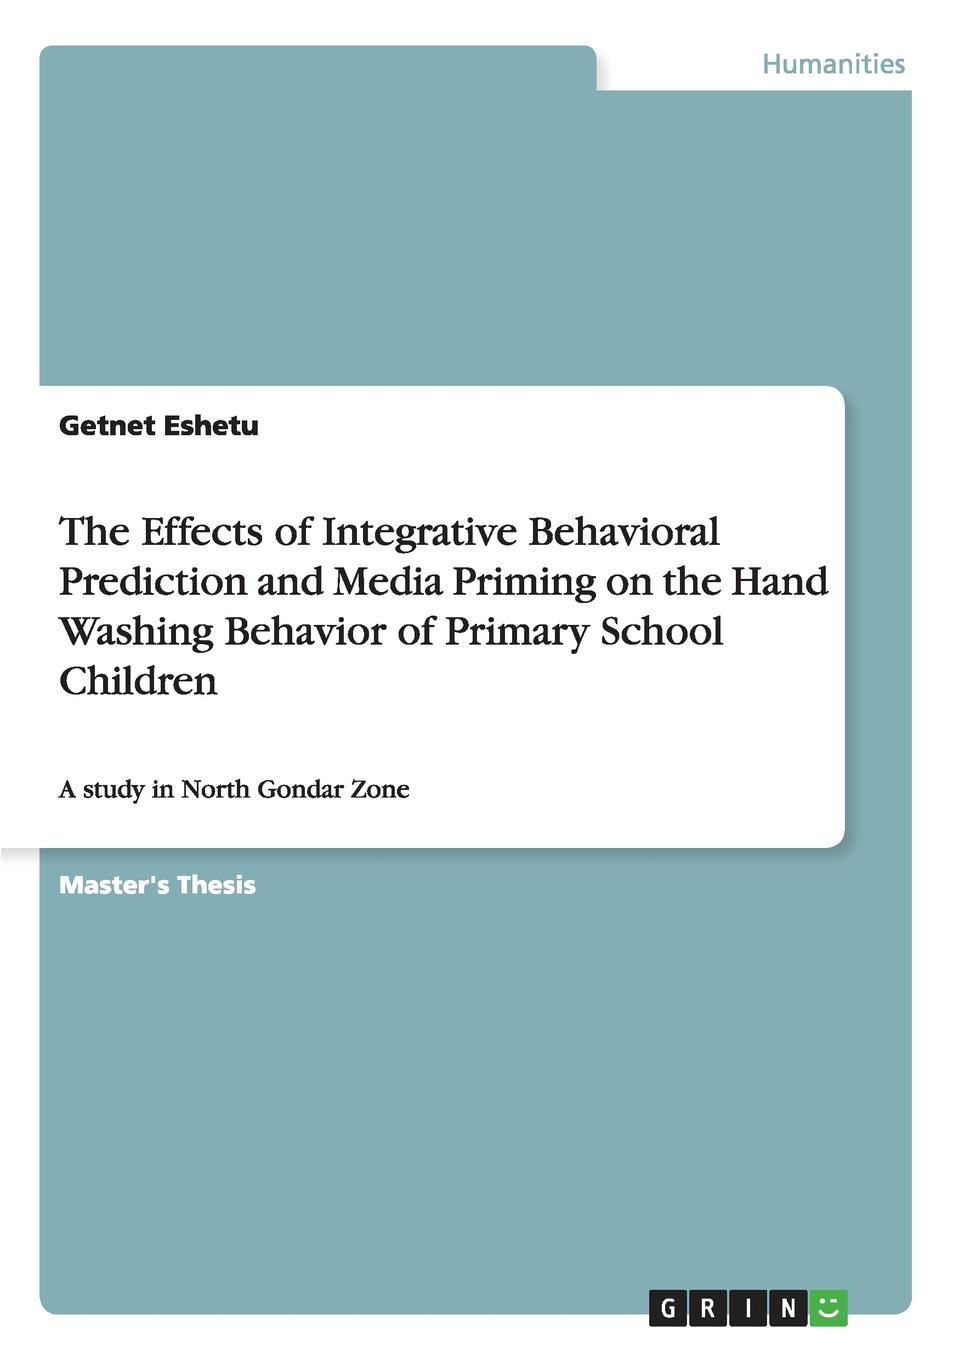 Getnet Eshetu The Effects of Integrative Behavioral Prediction and Media Priming on the Hand Washing Behavior of Primary School Children mohamed aymen elouaer maher souguir and cherif hannachi effect of nacl priming on germination behavior of fenugreek